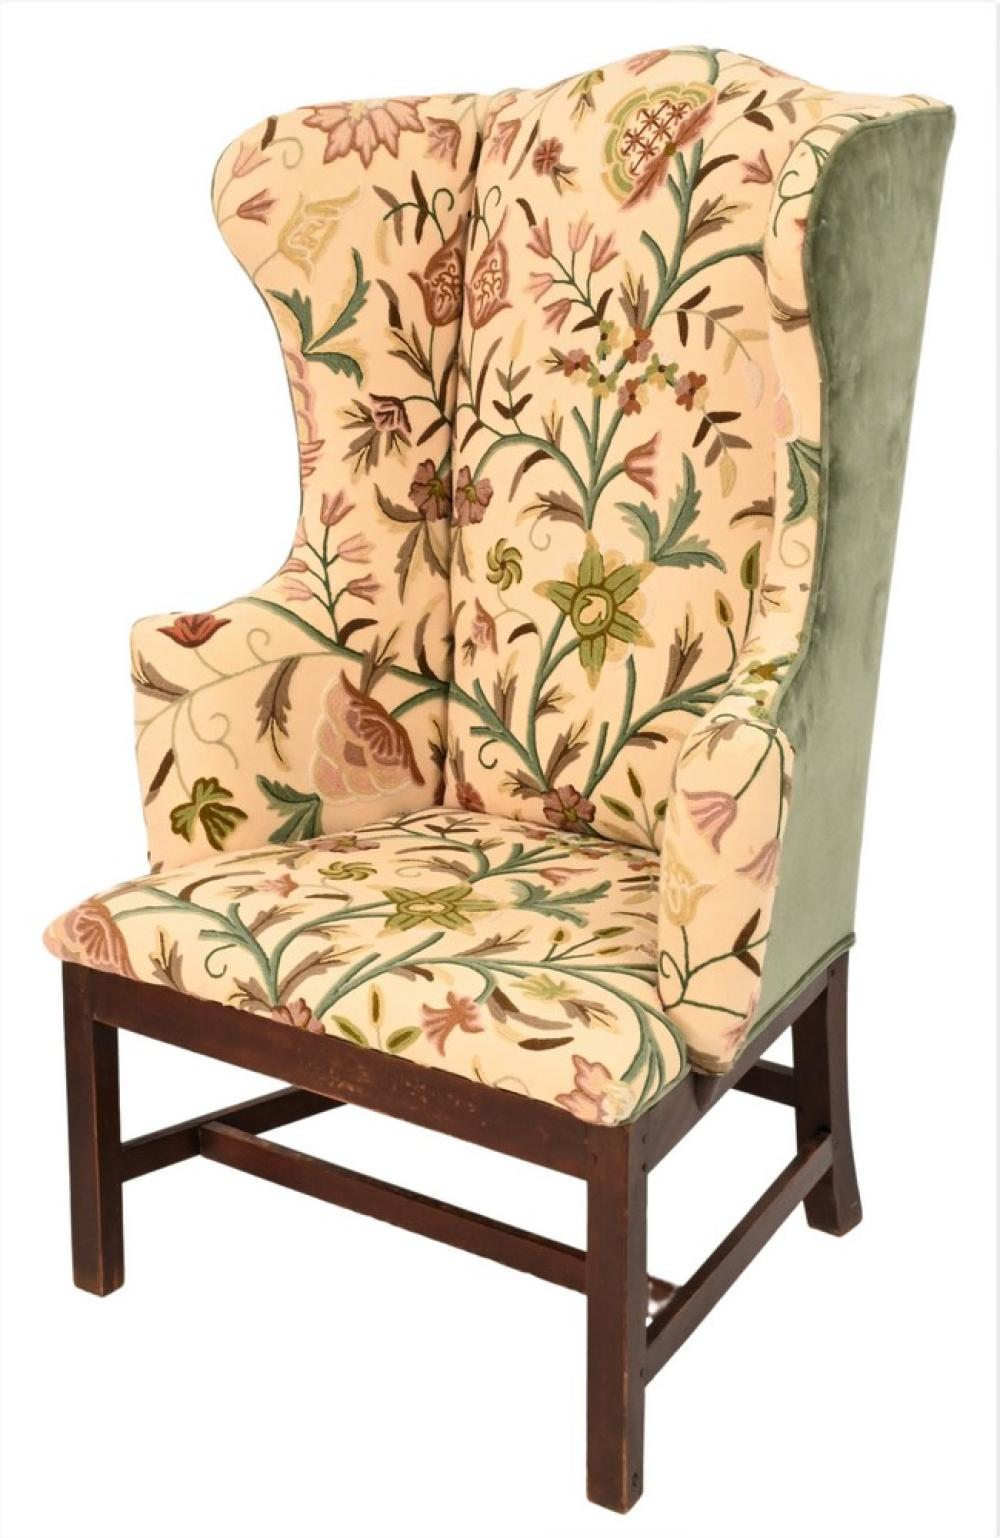 Chippendale Maple Upholstered Wing Chairin crewel work upholsteryset on base with squared legs with H stretchersheight 46 inches,...